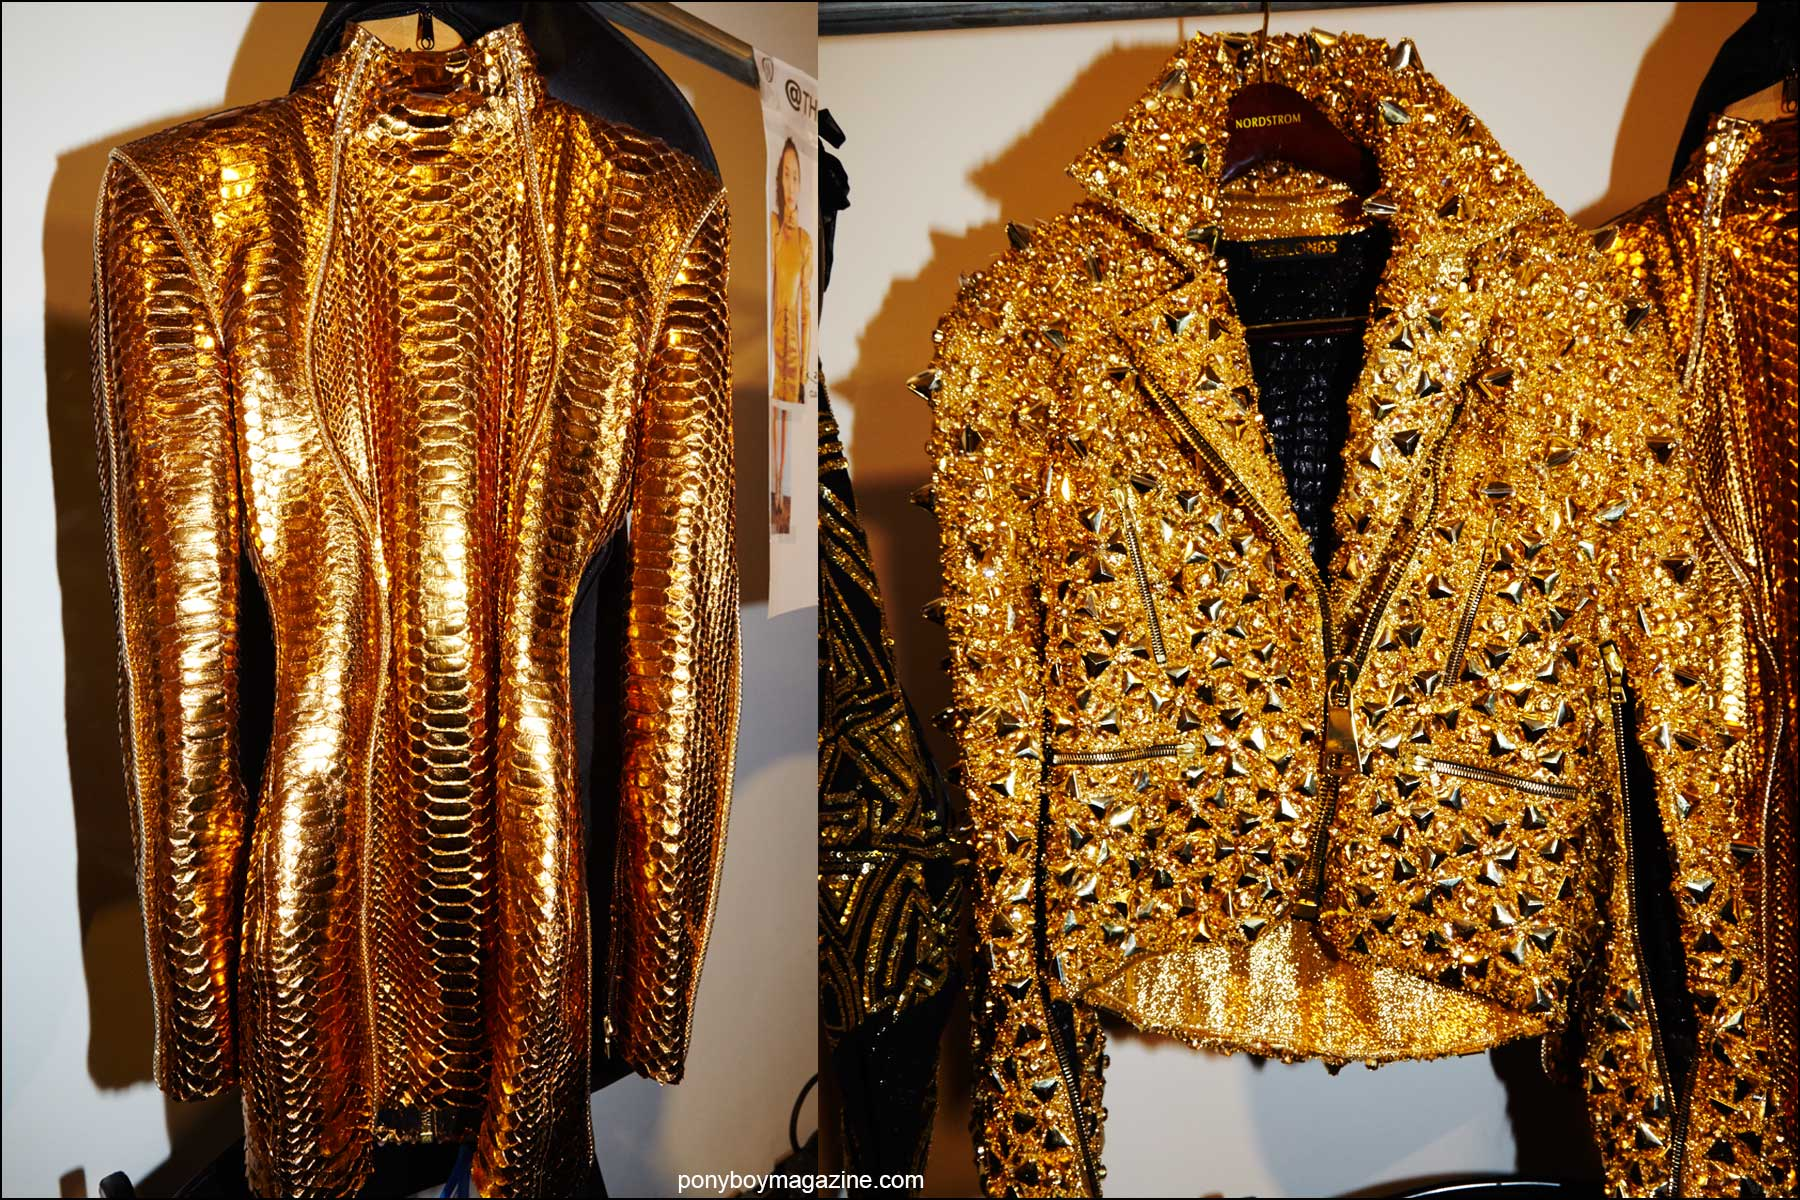 Detail shots of a snakeskin mini dress and a gold motorcycle jacket, backstage at the Blonds S/S16 runway show. Photography by Alexander Thompson for Ponyboy magazine NY.